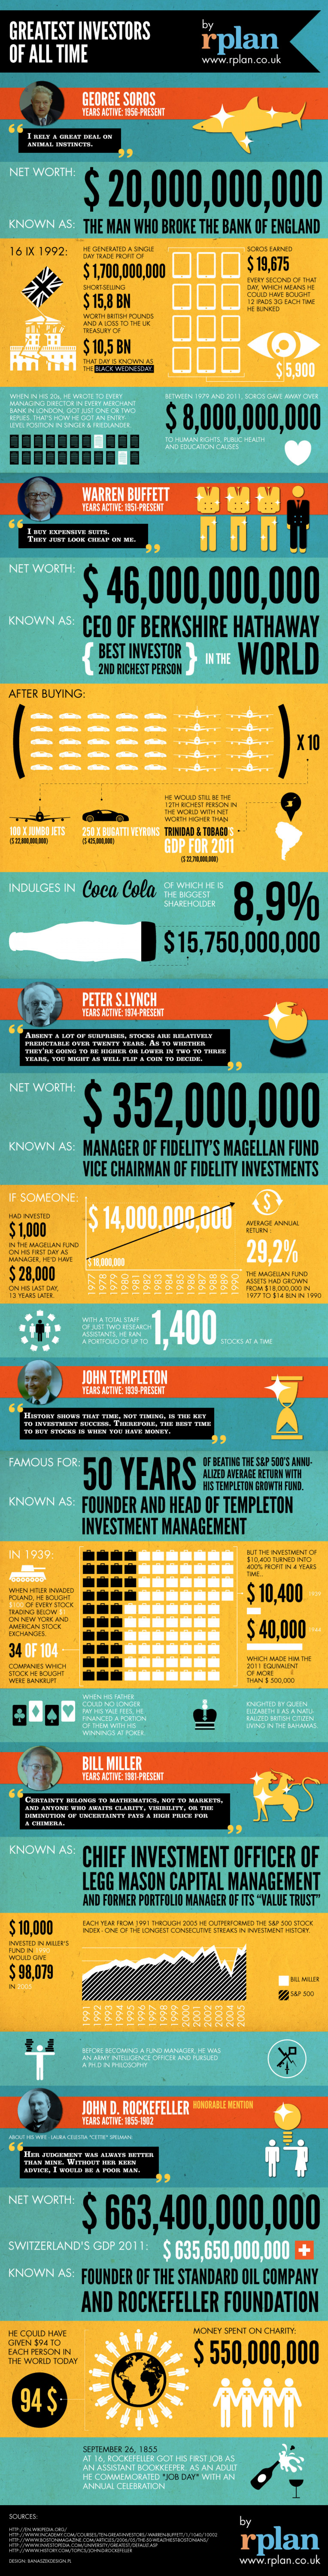 Greatest Investors of All Time Infographic